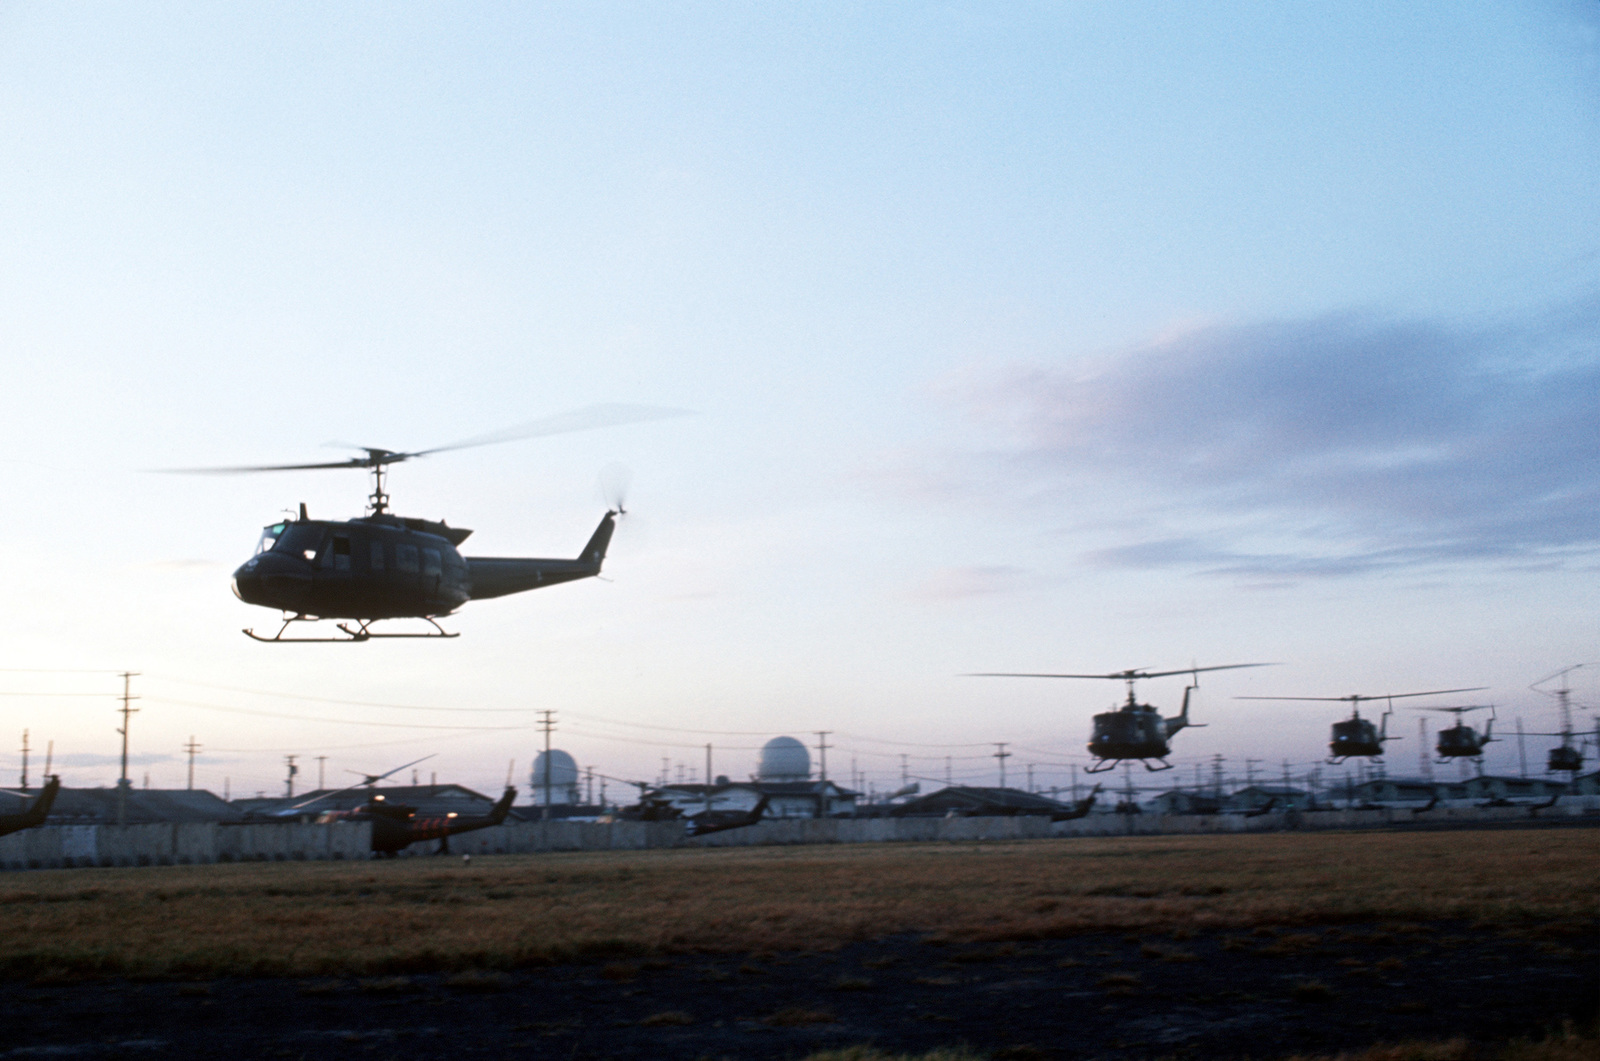 UH-1 Iroquois helicopters depart to pick up prisoners of war held at Loc Ninh